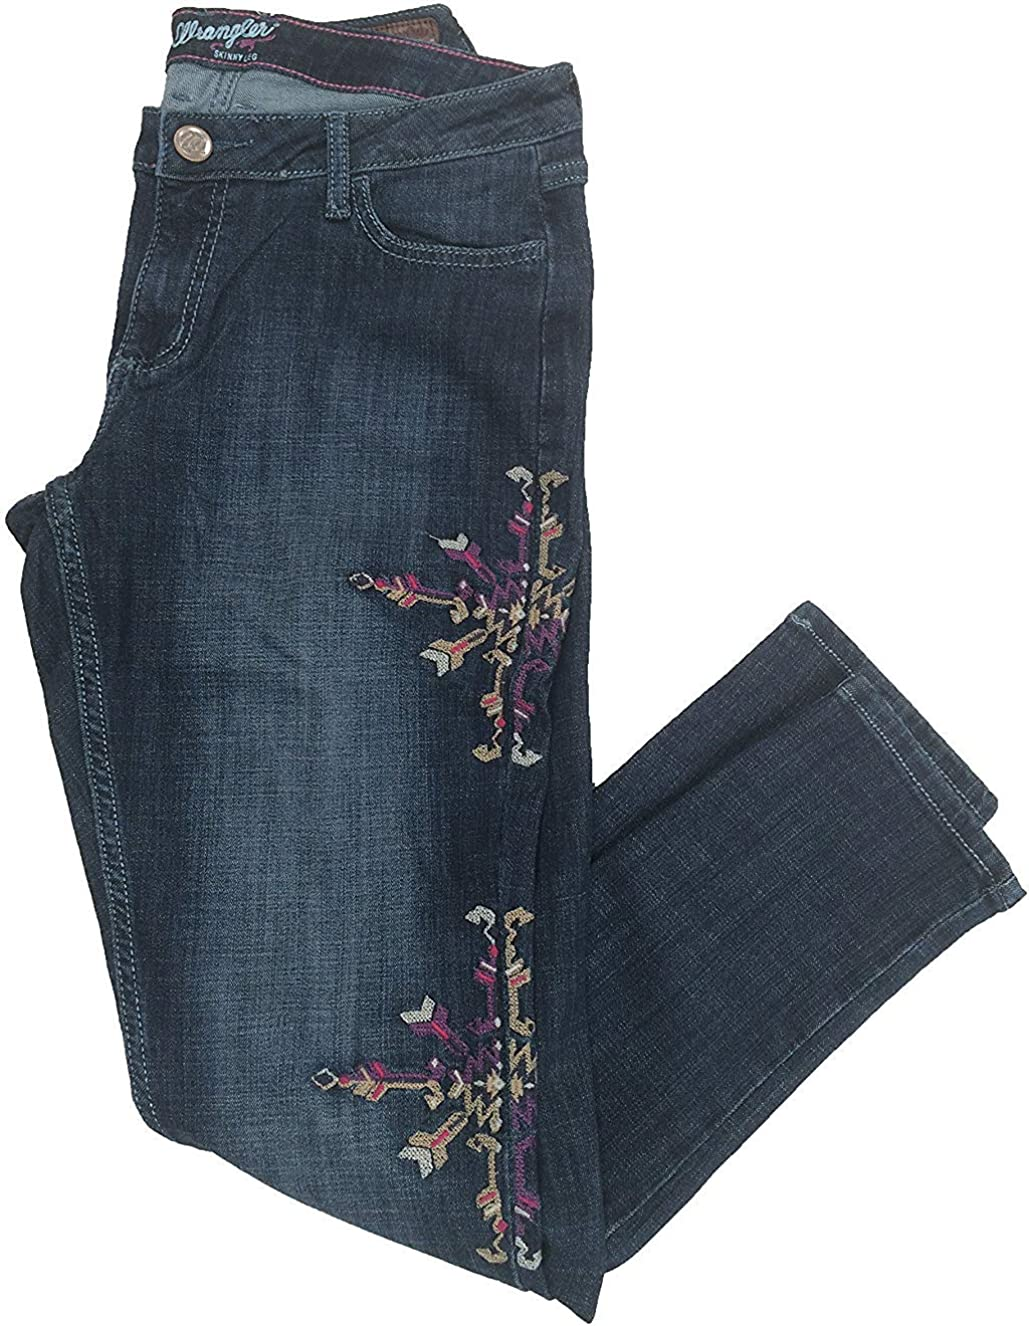 Wrangler Women's Premium Patch Mae Embroidered Skinny Leg Above The Hip Jean